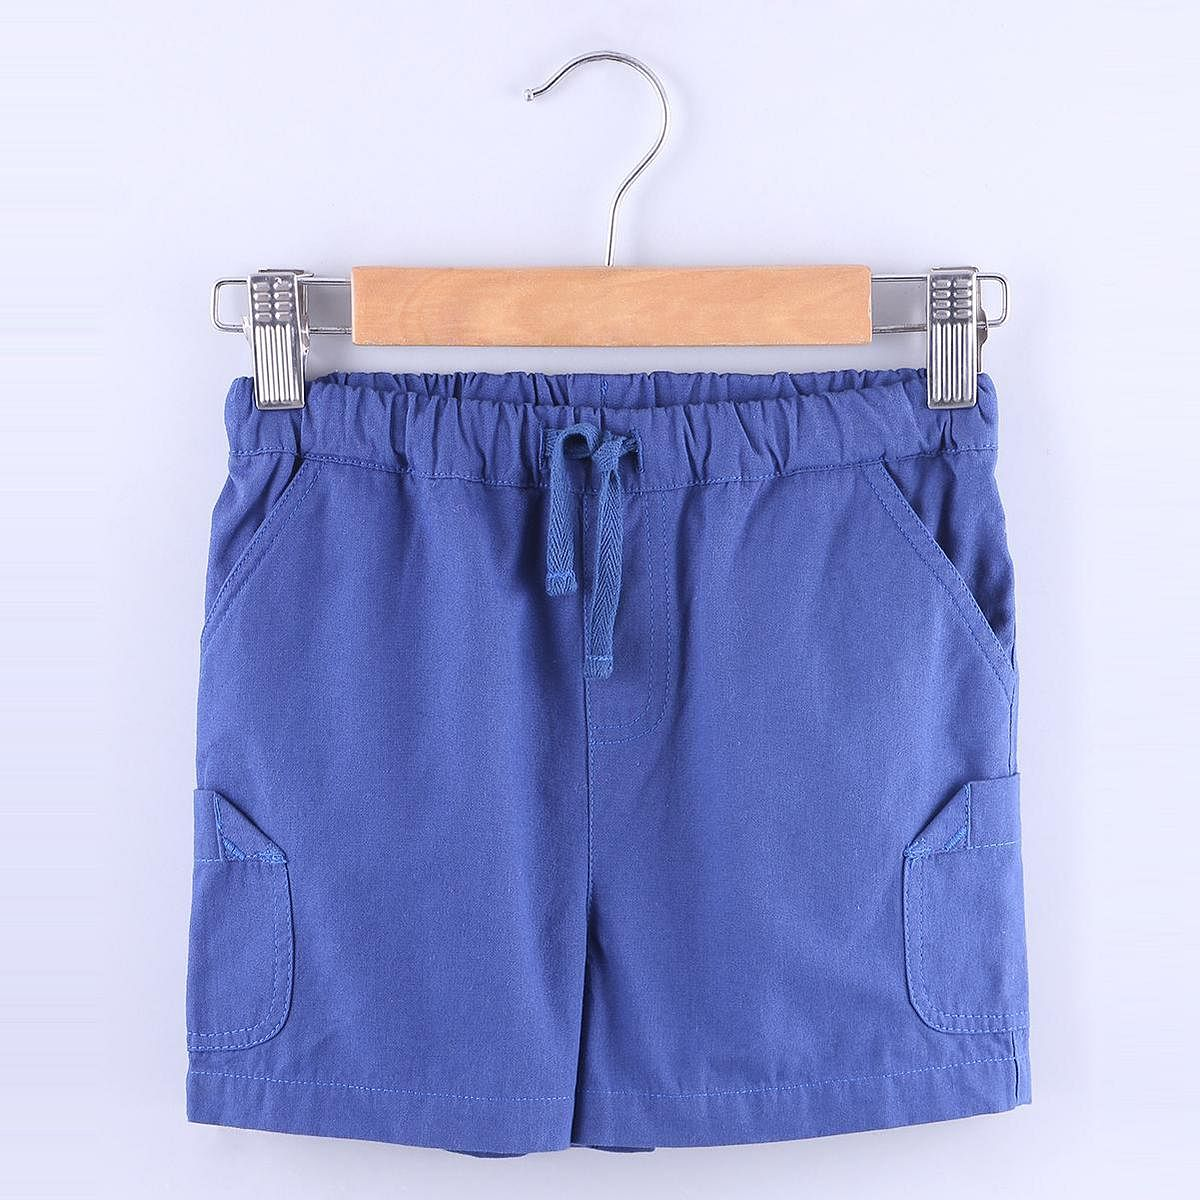 Beebay - Blue Colored Blue Pull Ups Cotton Shorts For Boys